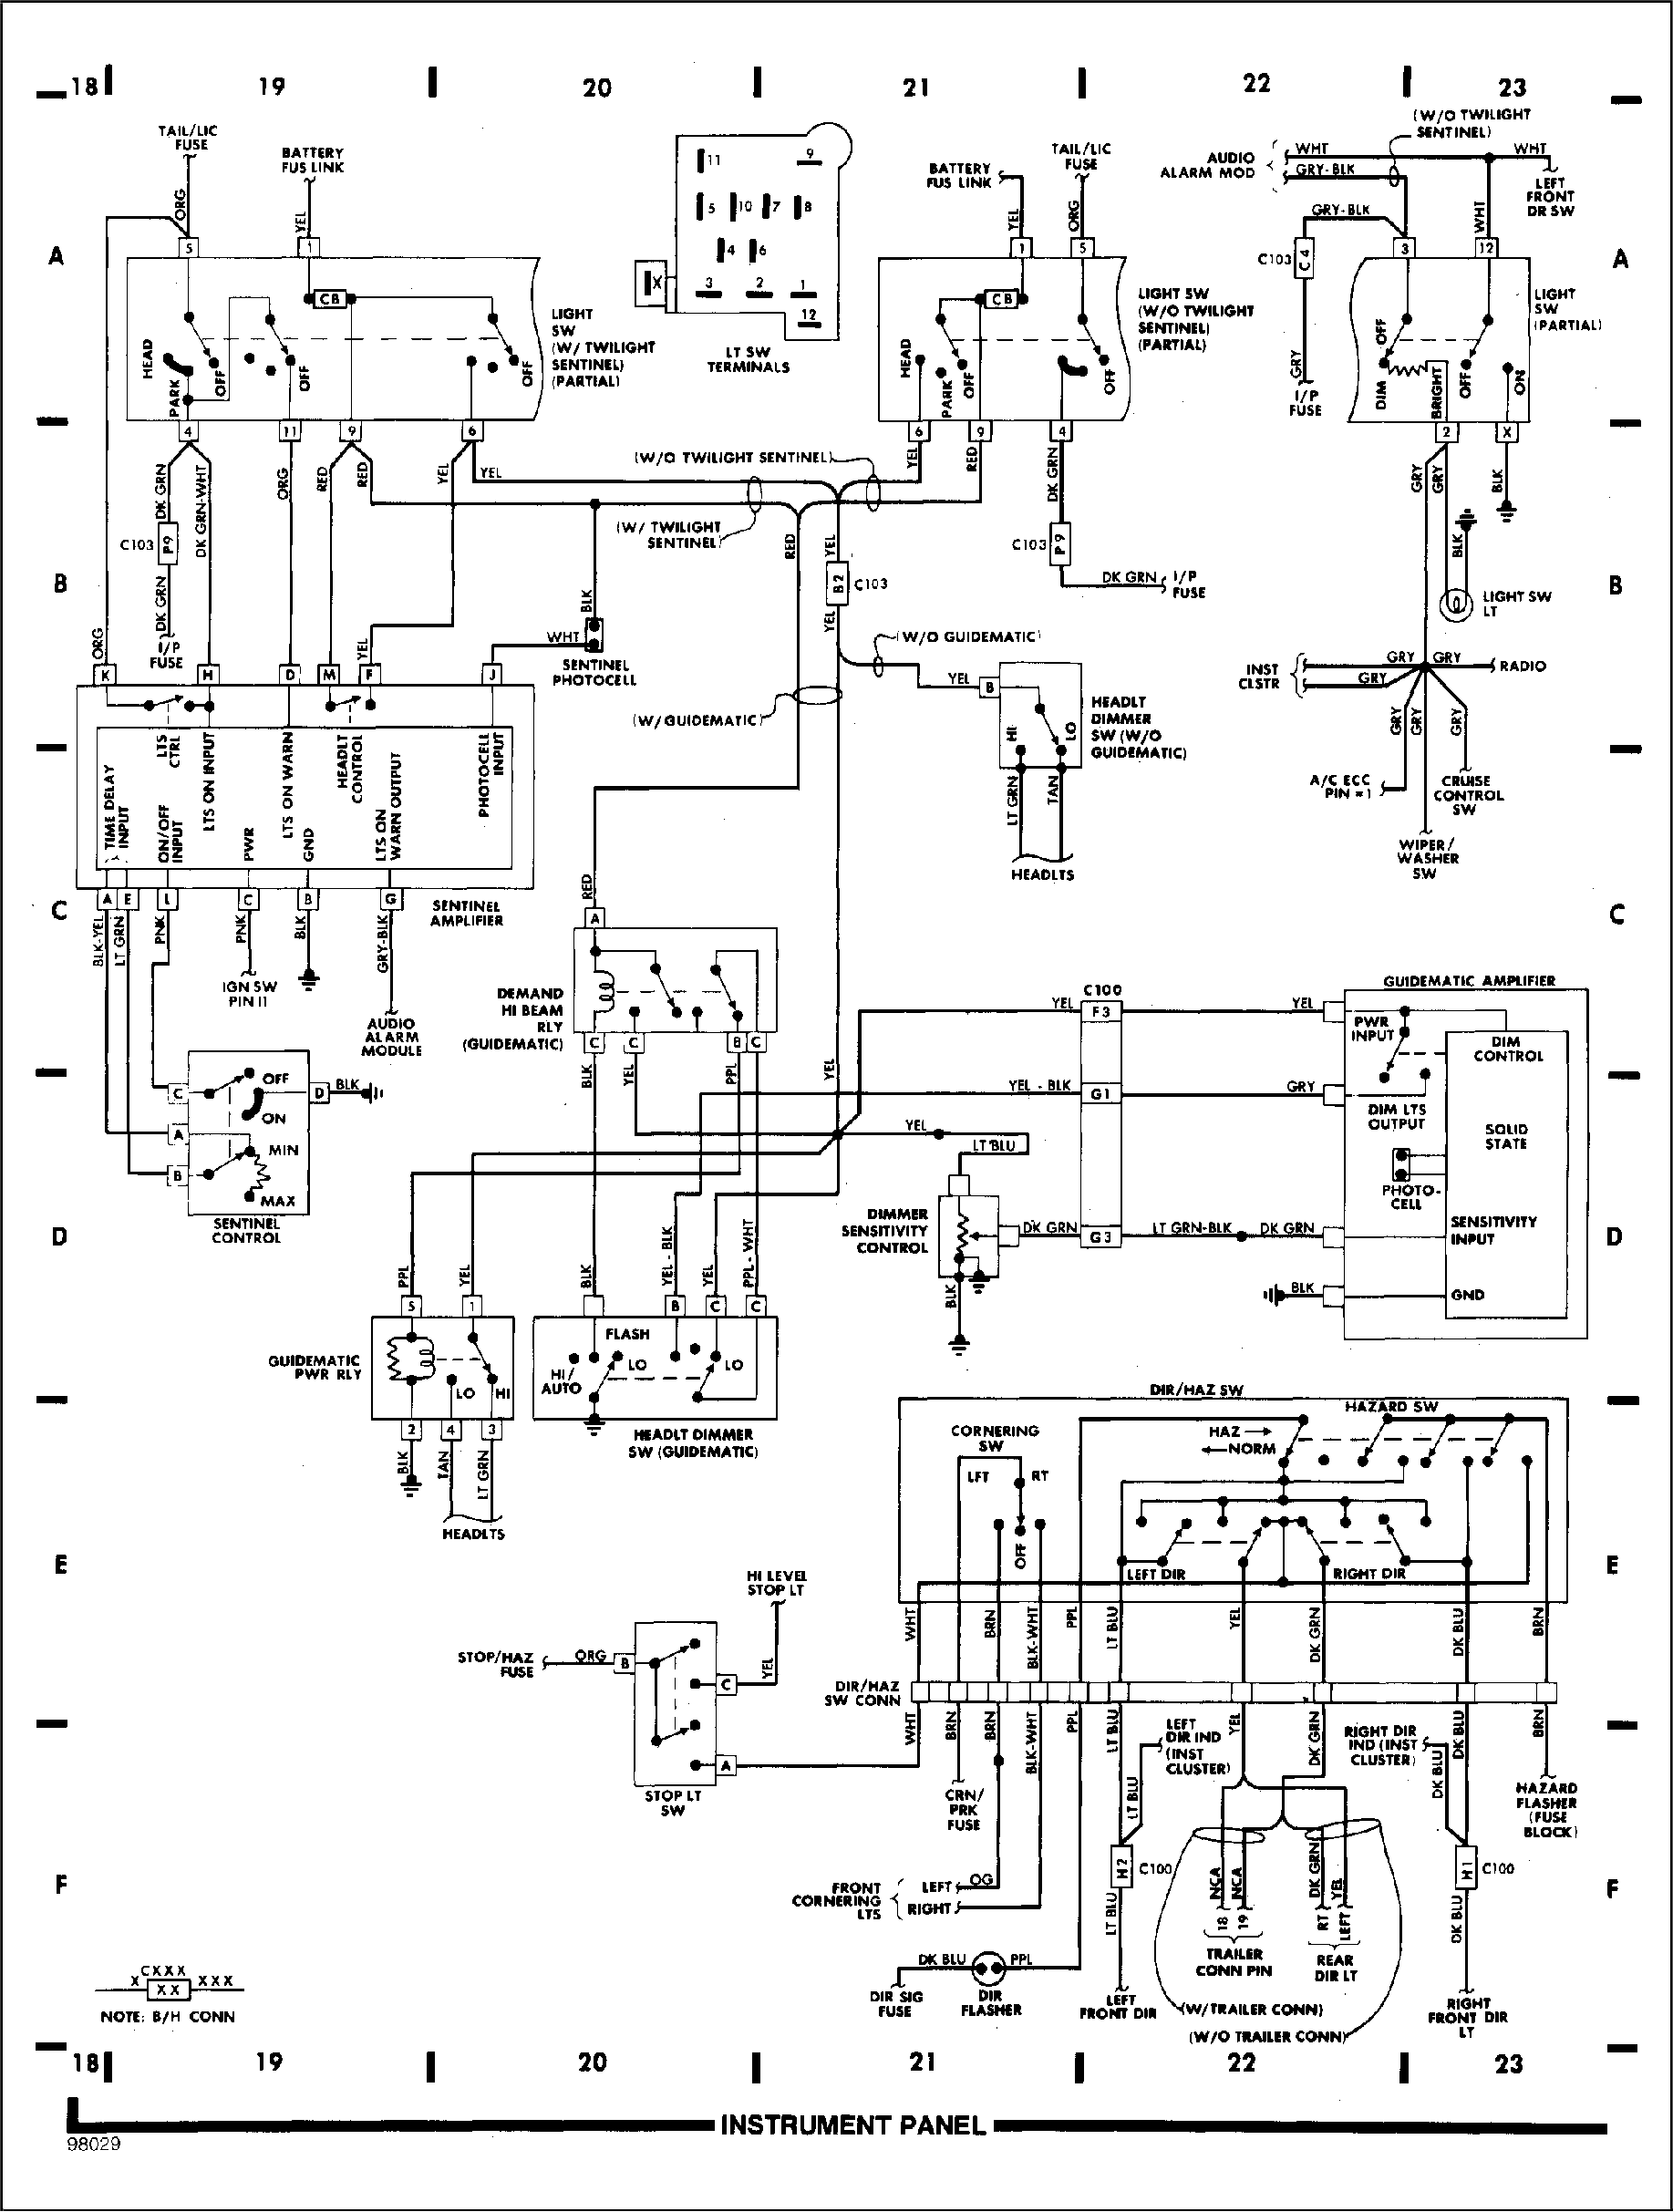 83 cadillac engine diagram get free image about wiring